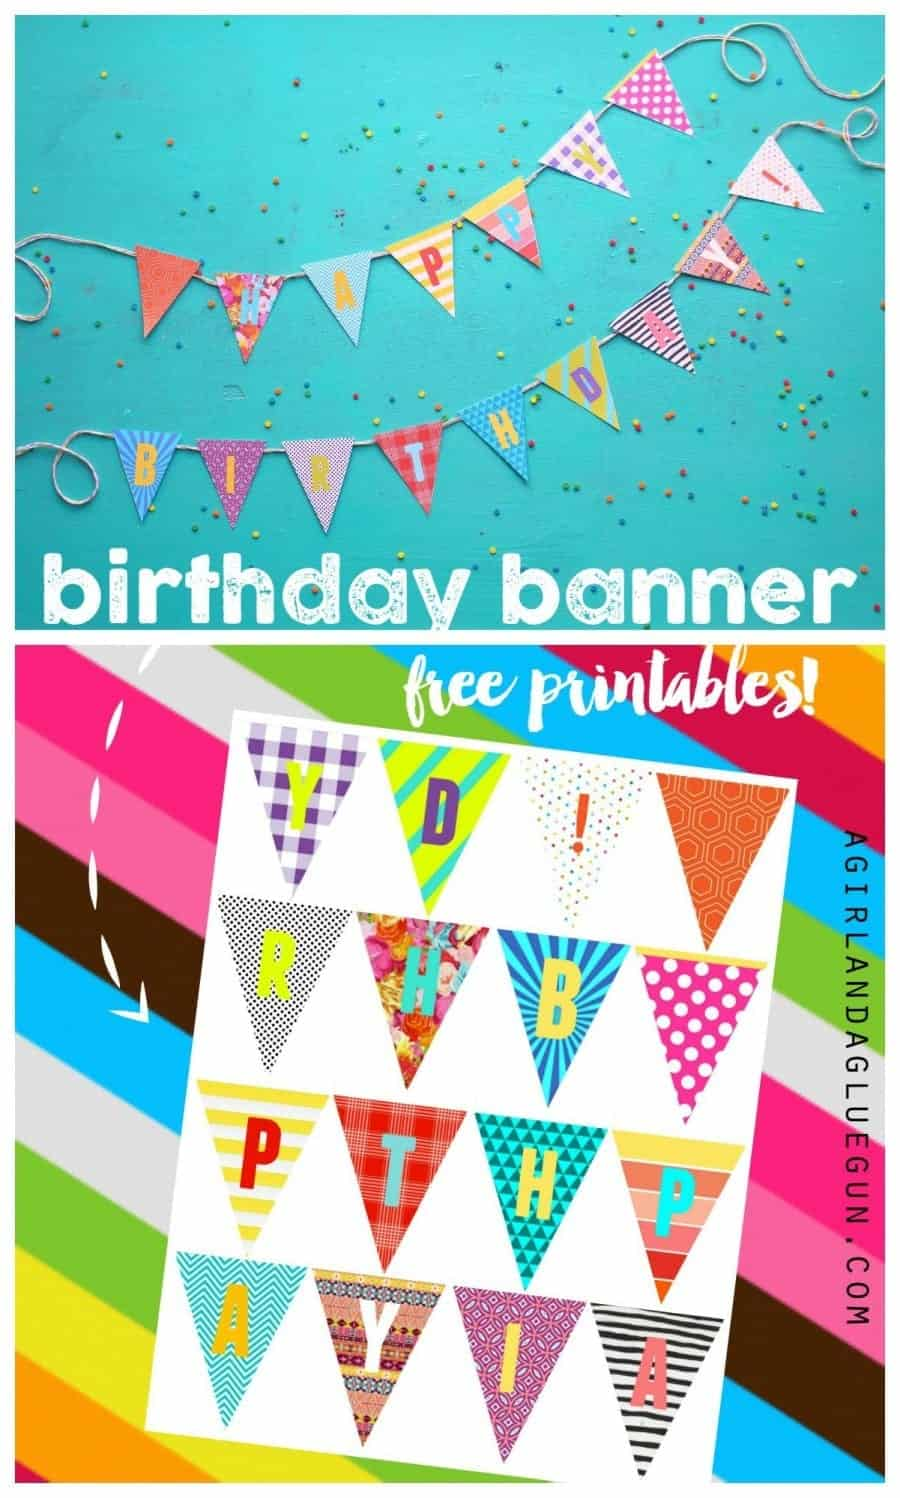 birthday-banner-with-free-printables-colorful-900x1498